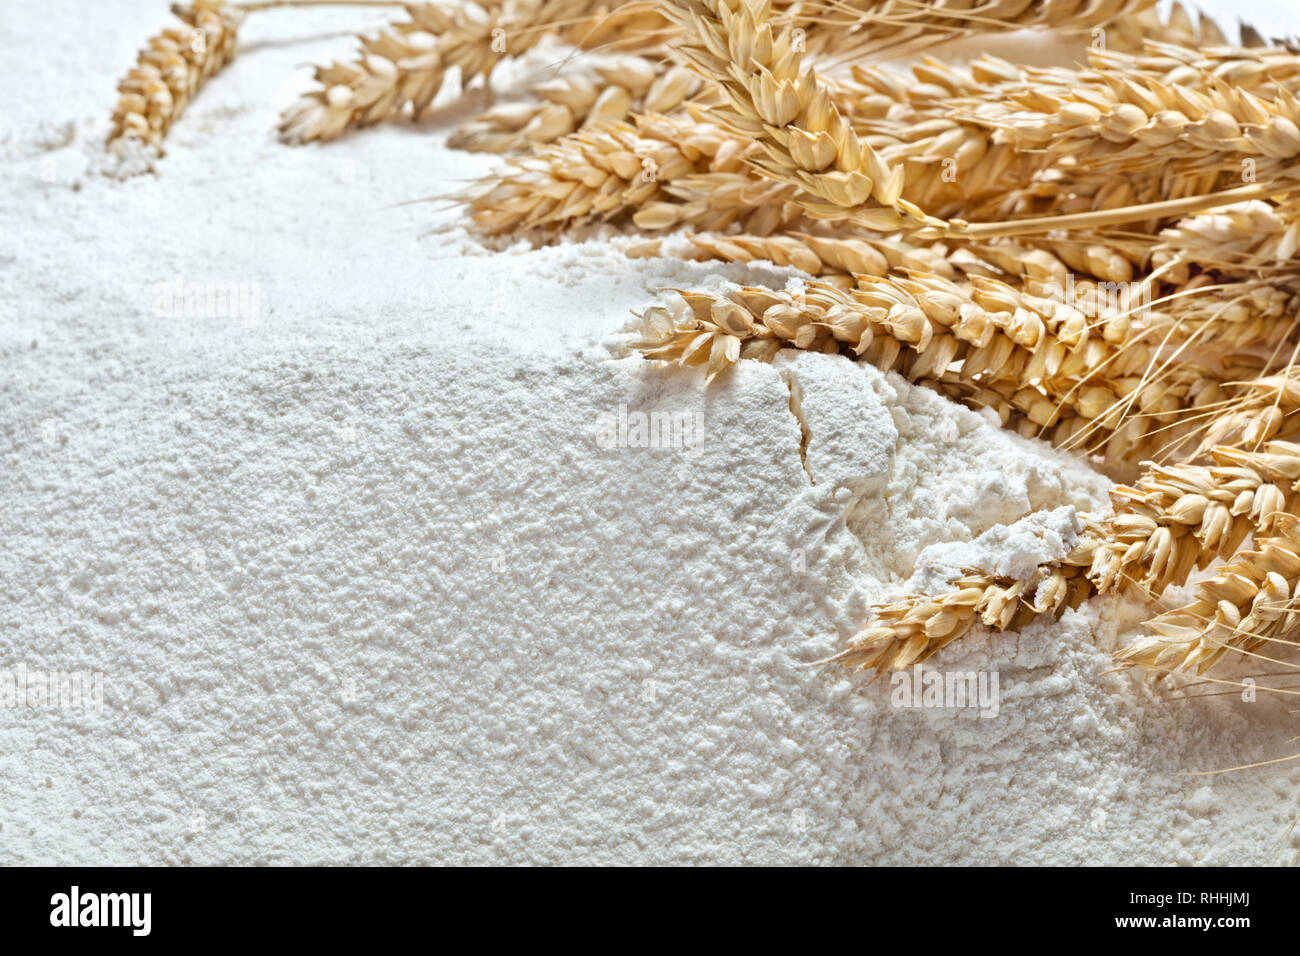 heap of wheat flour with ears of wheat - Stock Image